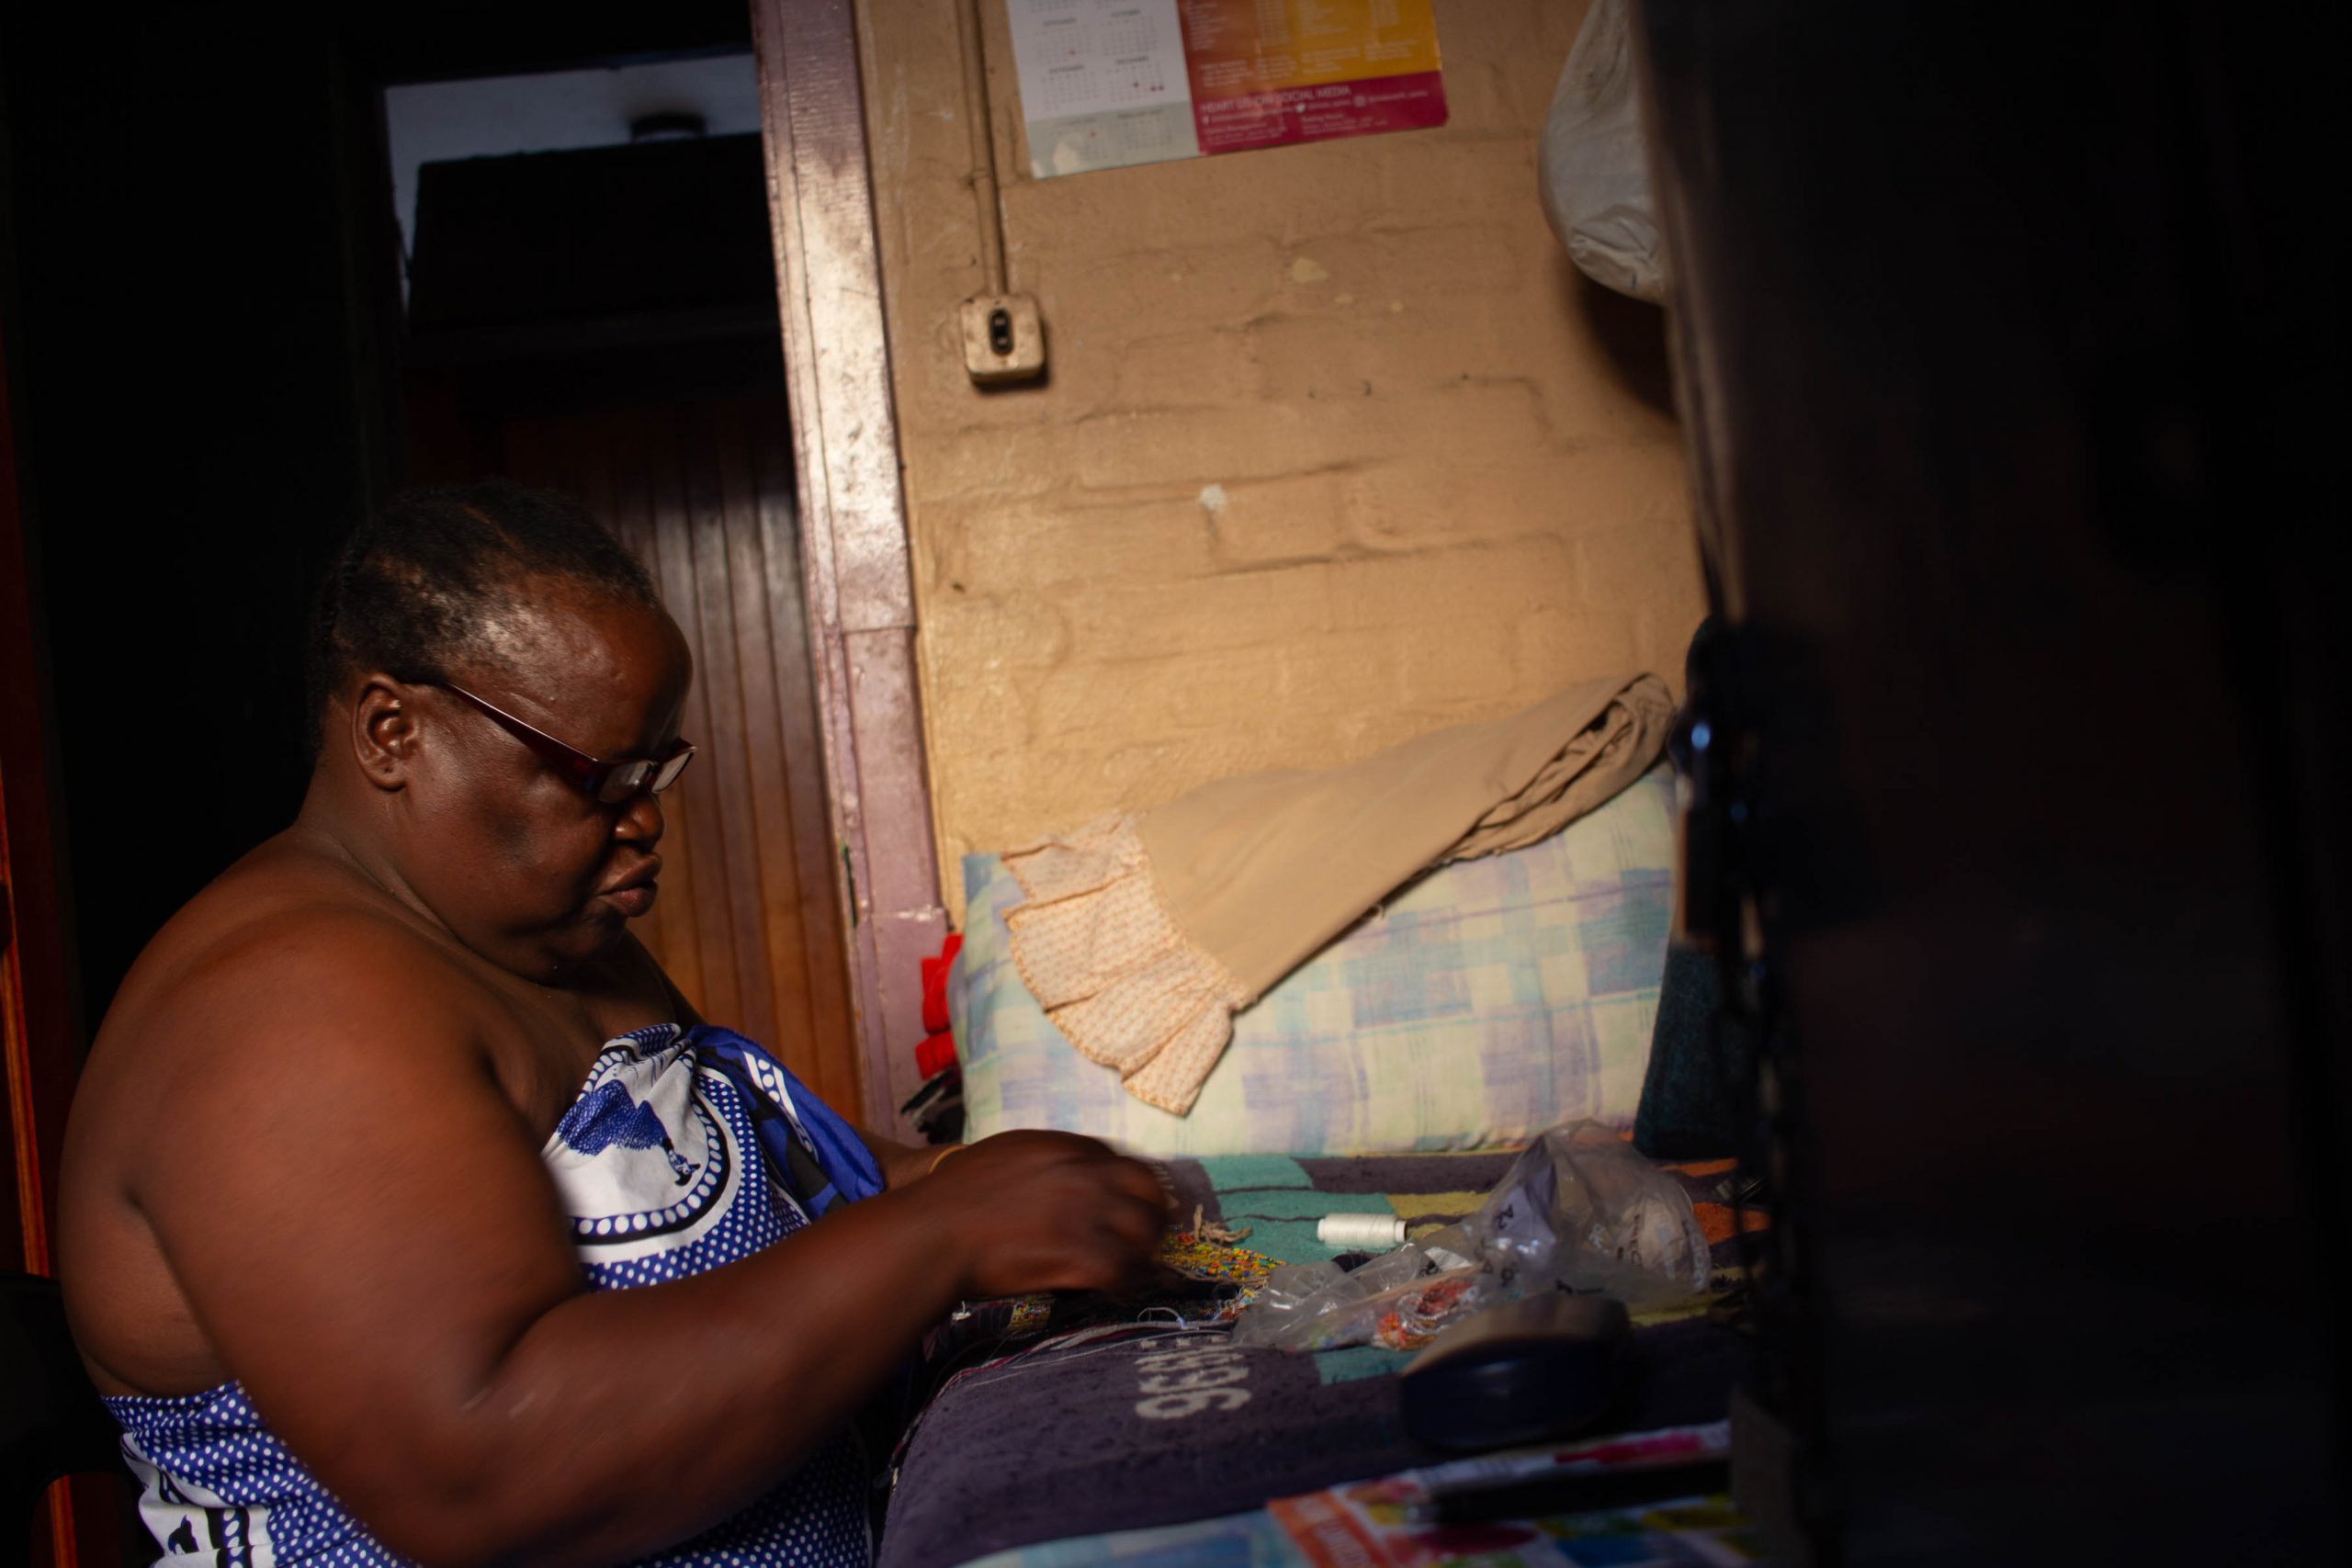 13 February 2020: Busi Msomi is a beader. She works in her room, using coloured beads to create her designs by the light from her window.